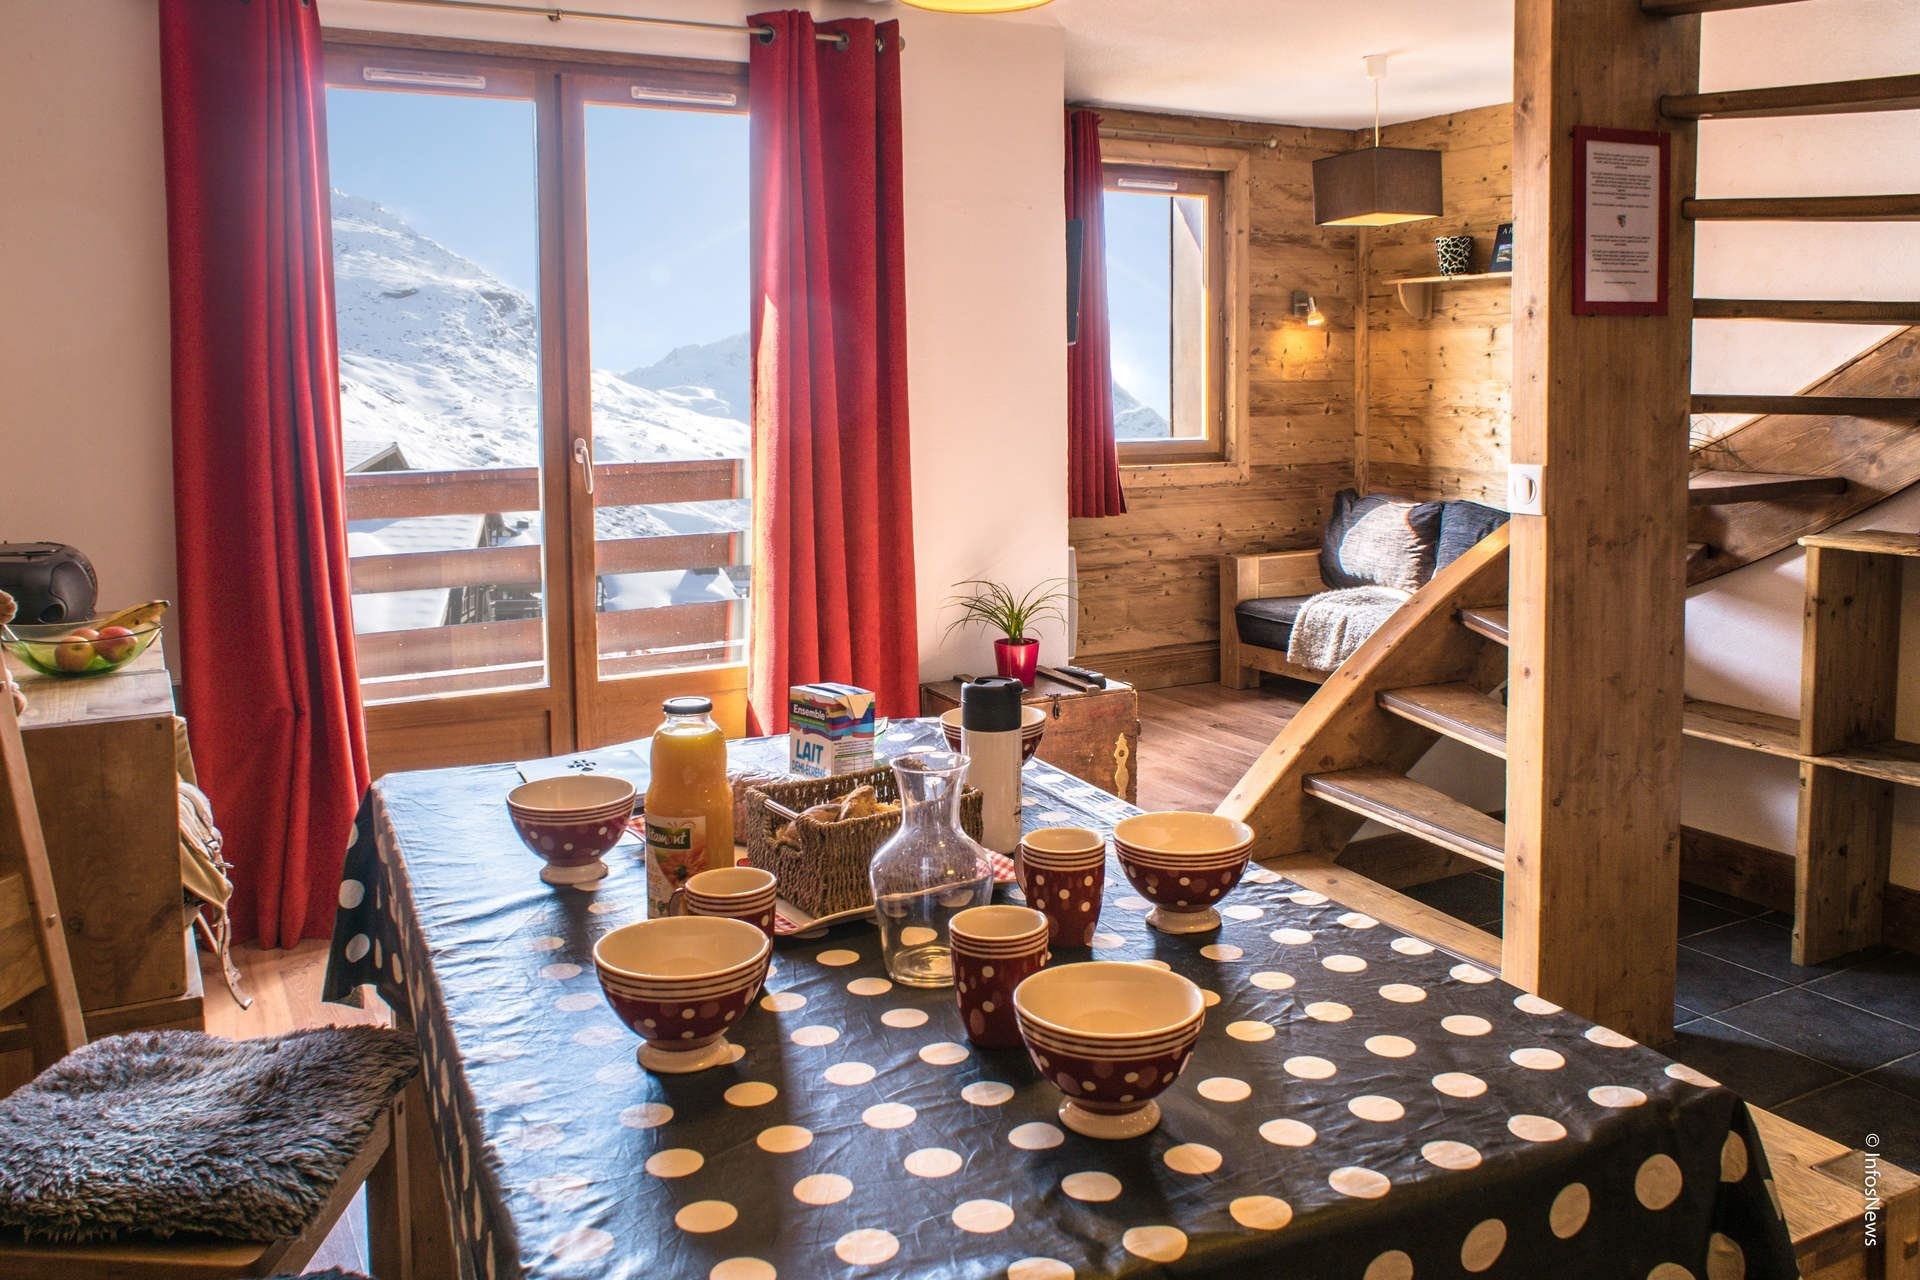 REINE BLANCHE 115 / 3 ROOMS 6 PEOPLE GRAND COMFORT CHARM